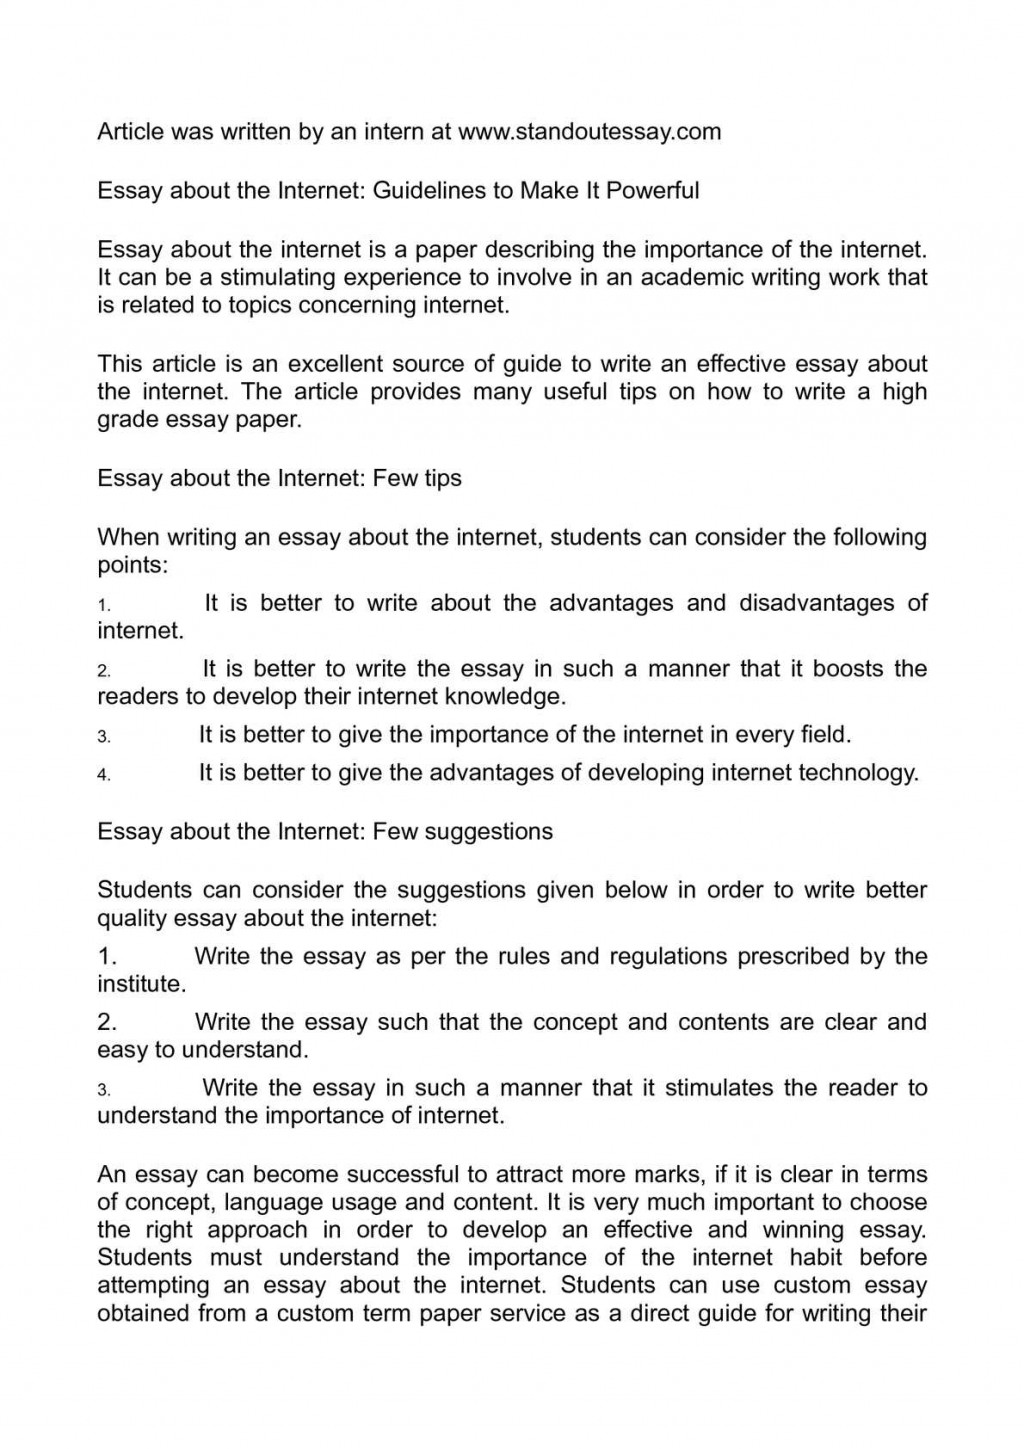 007 Internet Essay P1 Wondrous Privacy Introduction Censorship Topics Chatting In Urdu Large